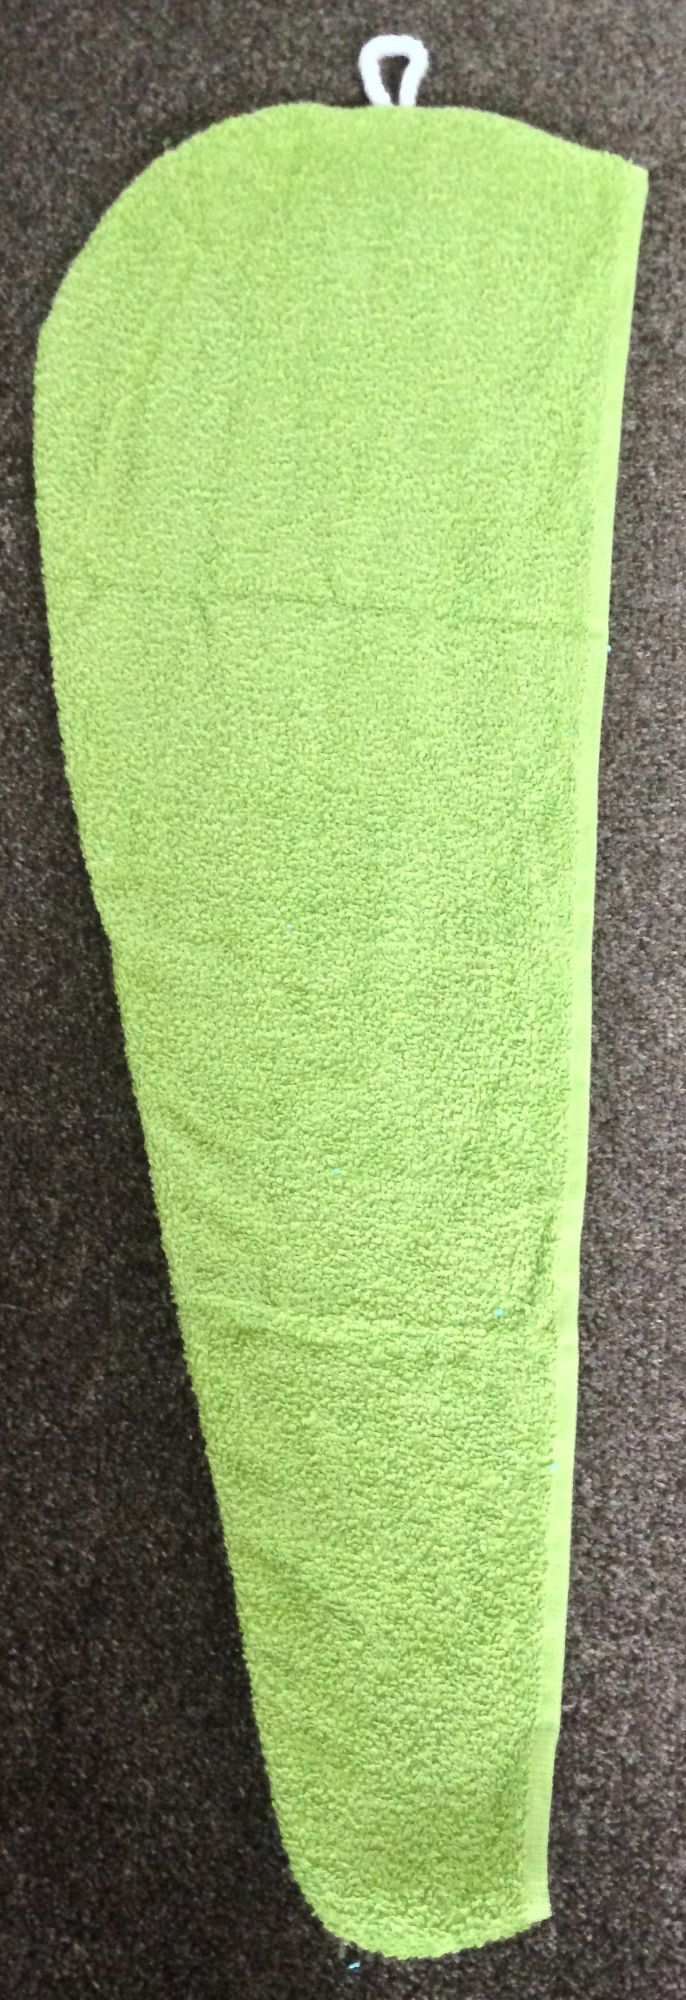 TURBIE TOWEL LIME GREEN